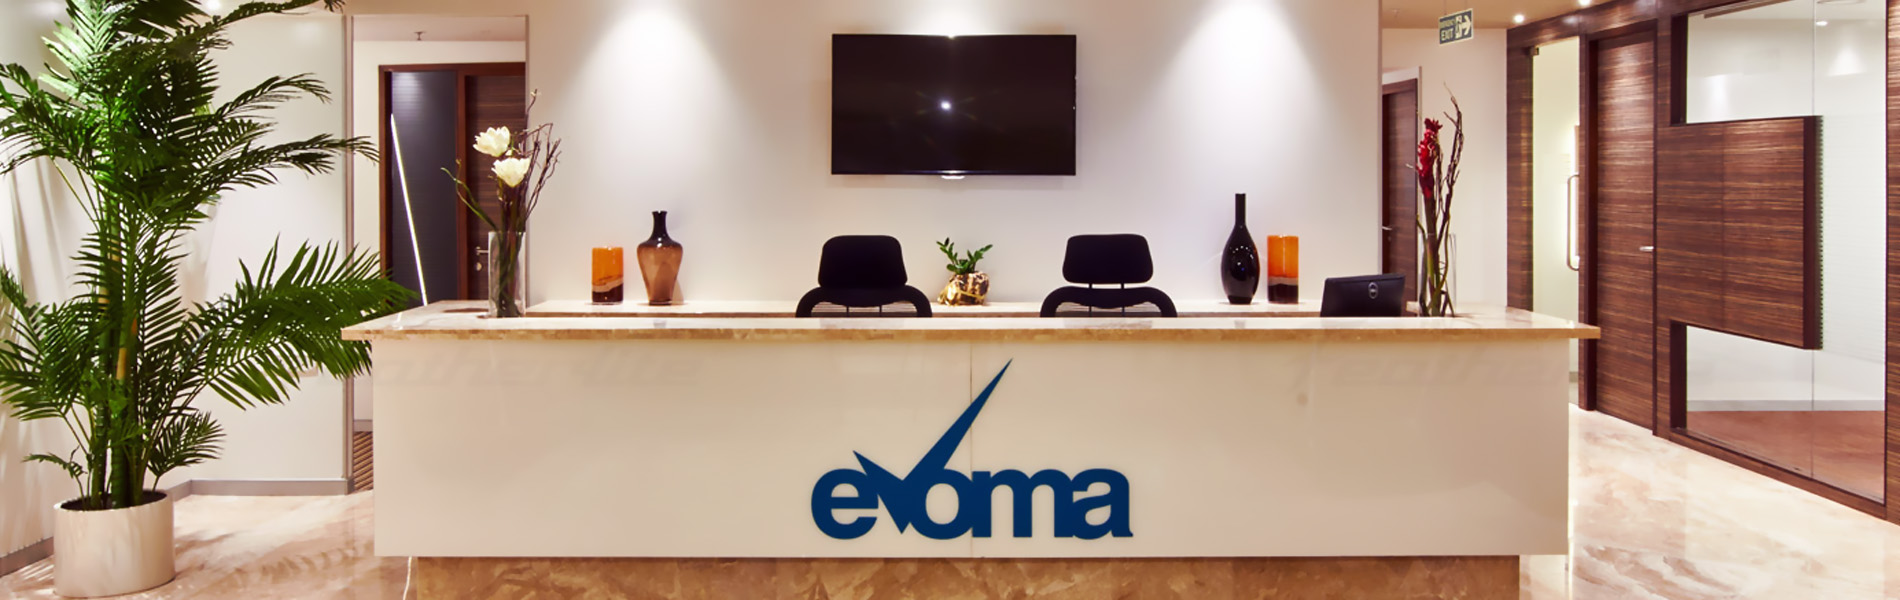 evoma-office-orr